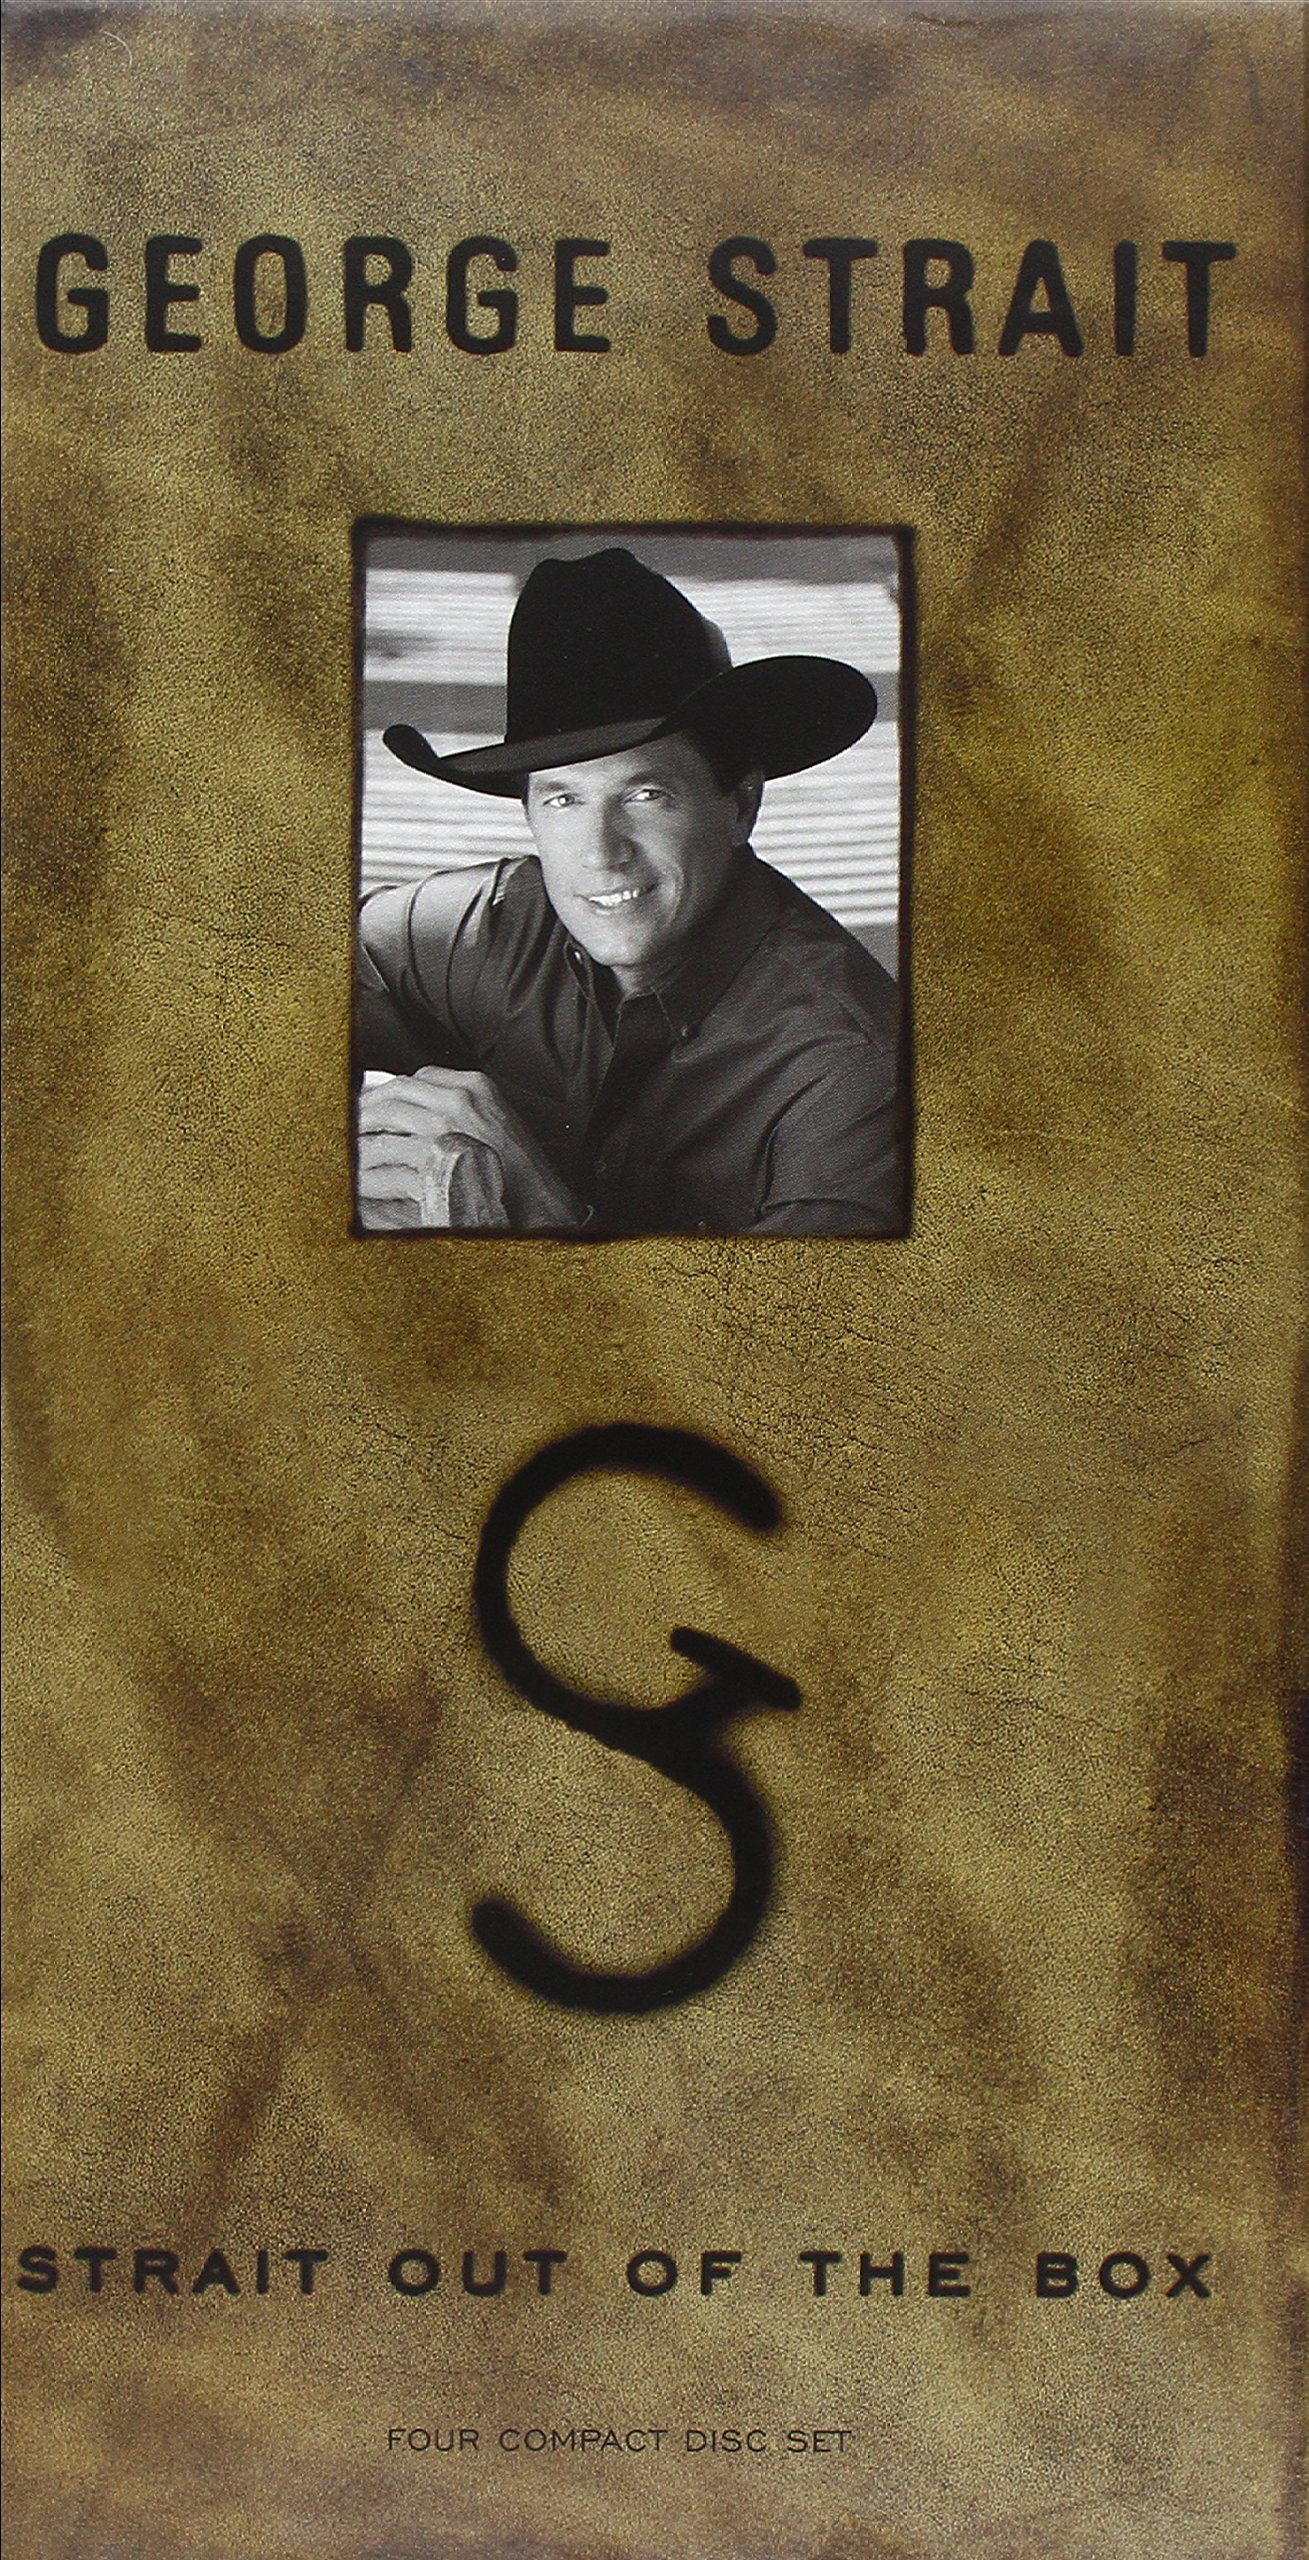 Strait Out Of The Box [4 CD/CS Box Set] by STRAIT,GEORGE